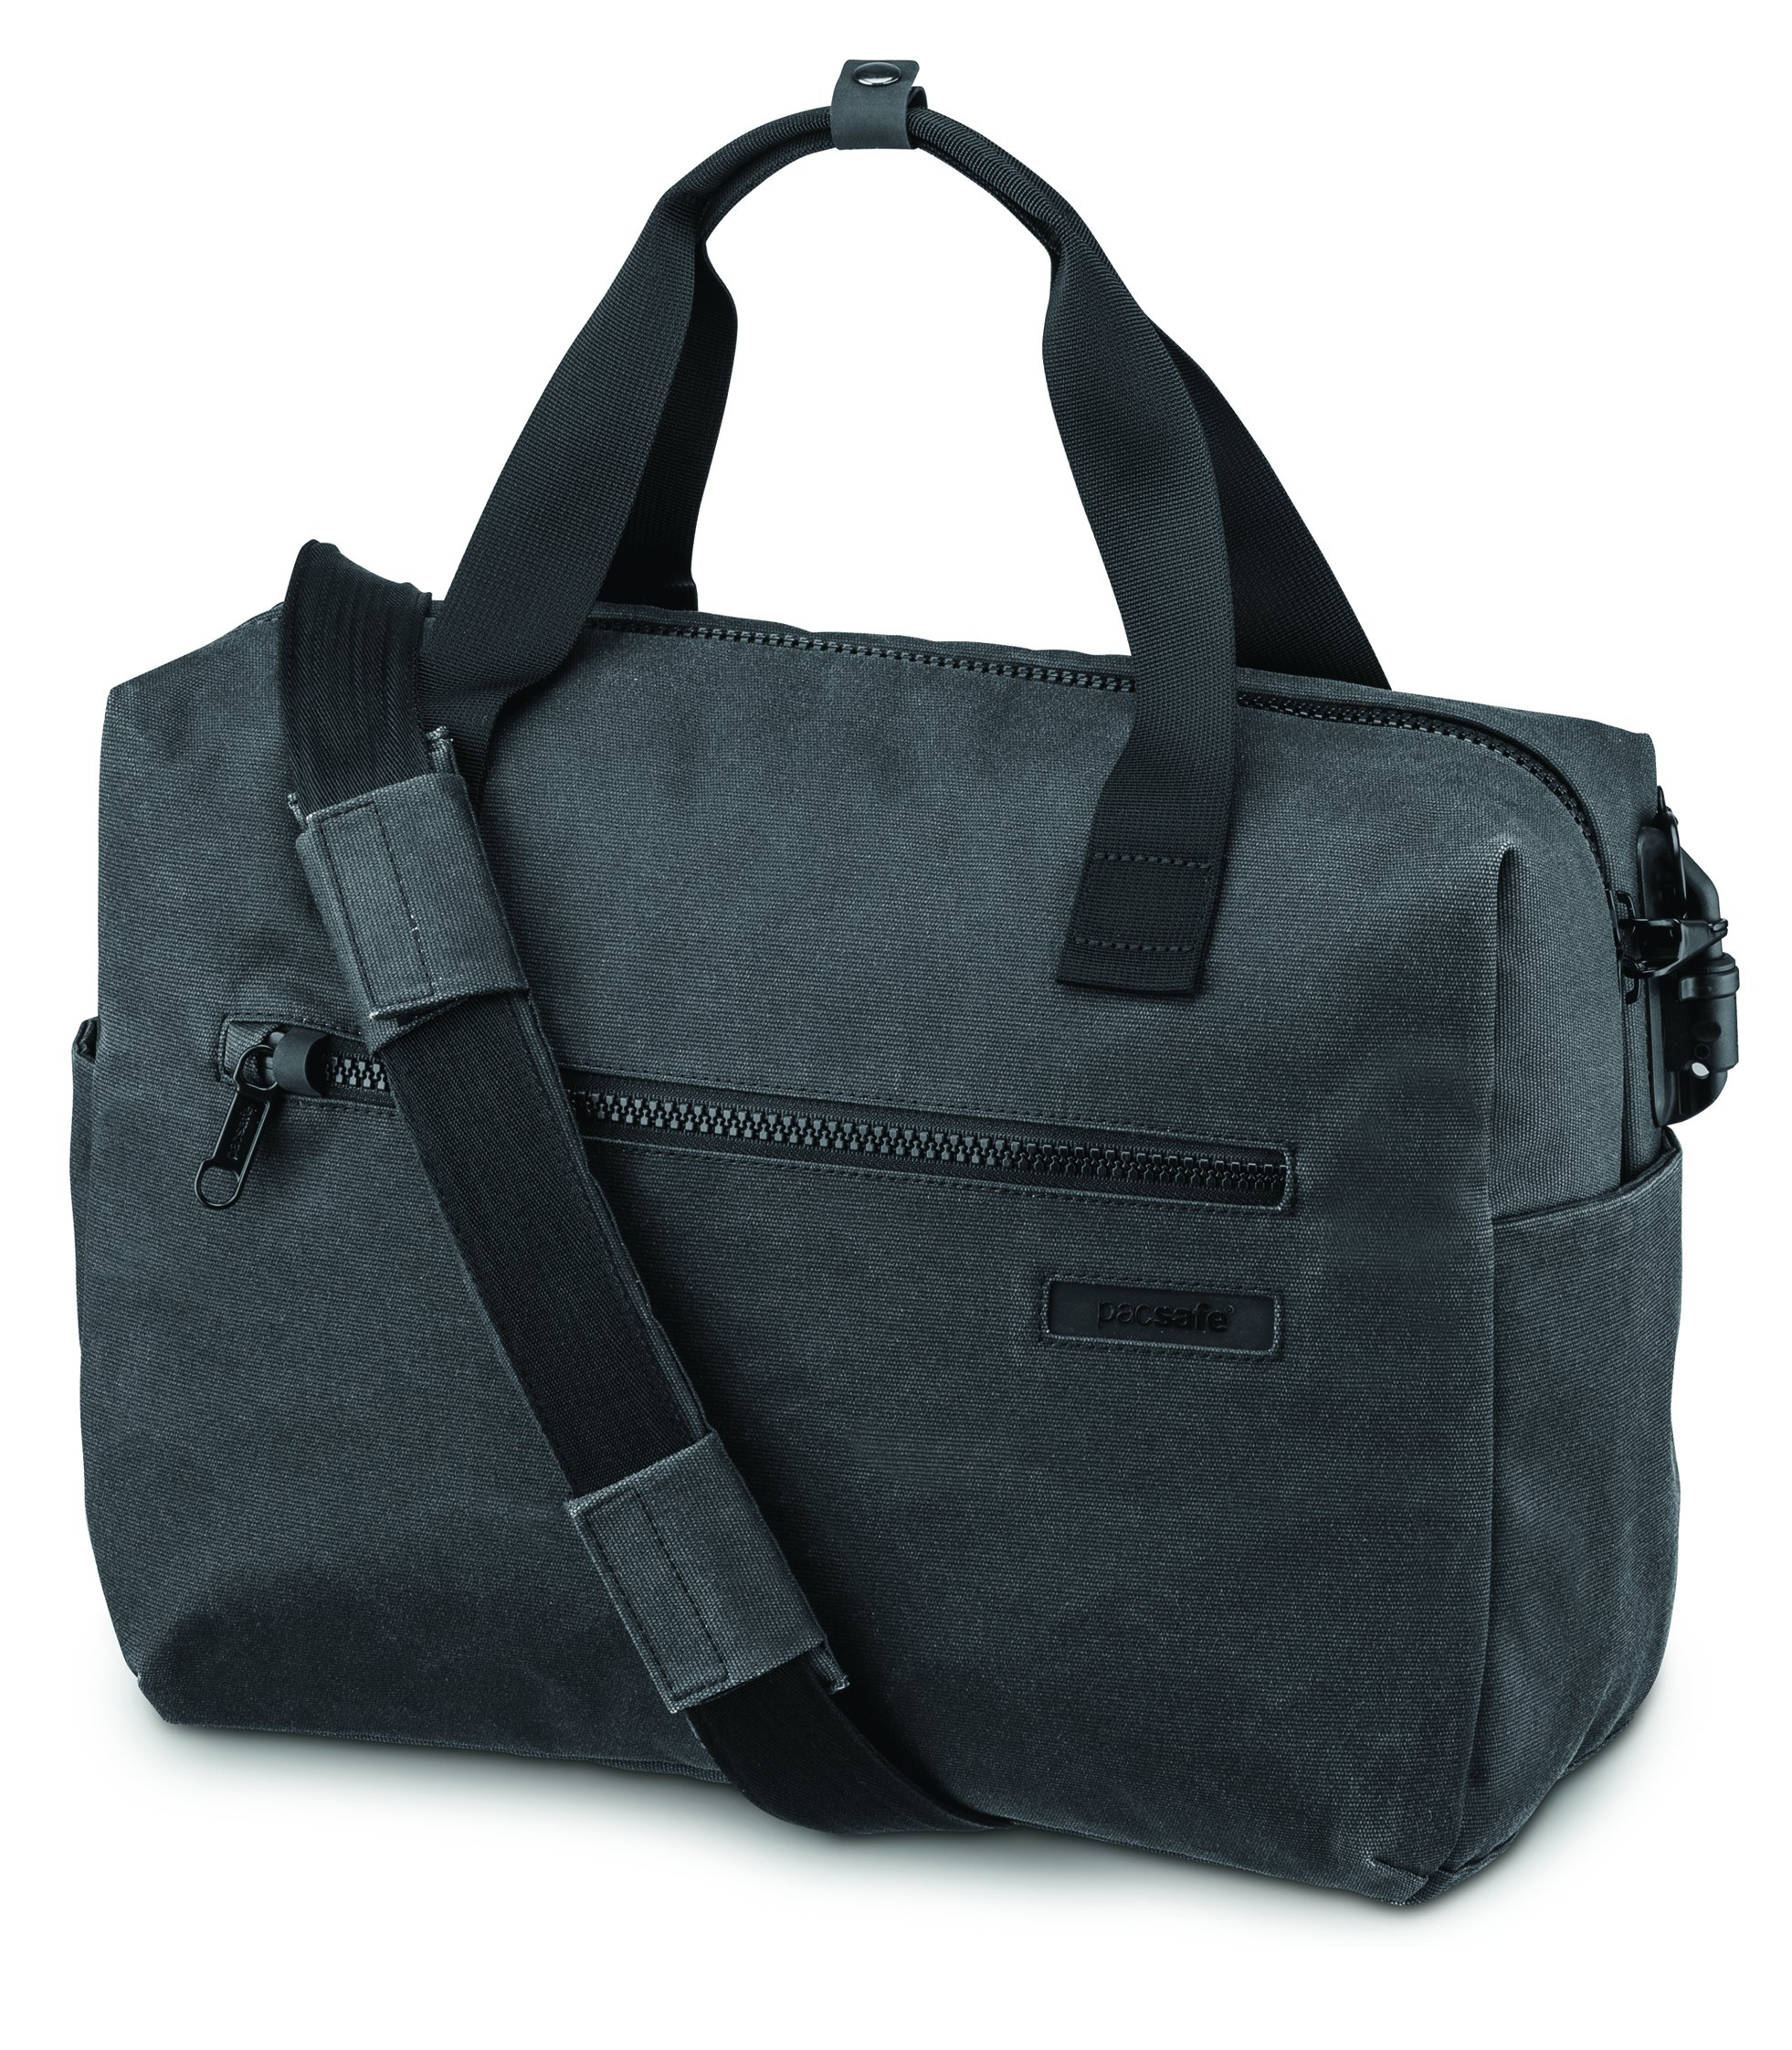 Pacsafe Intasafe Z400 Deluxe Anti-Theft Laptop Shoulder Bag, Charcoal by Pacsafe